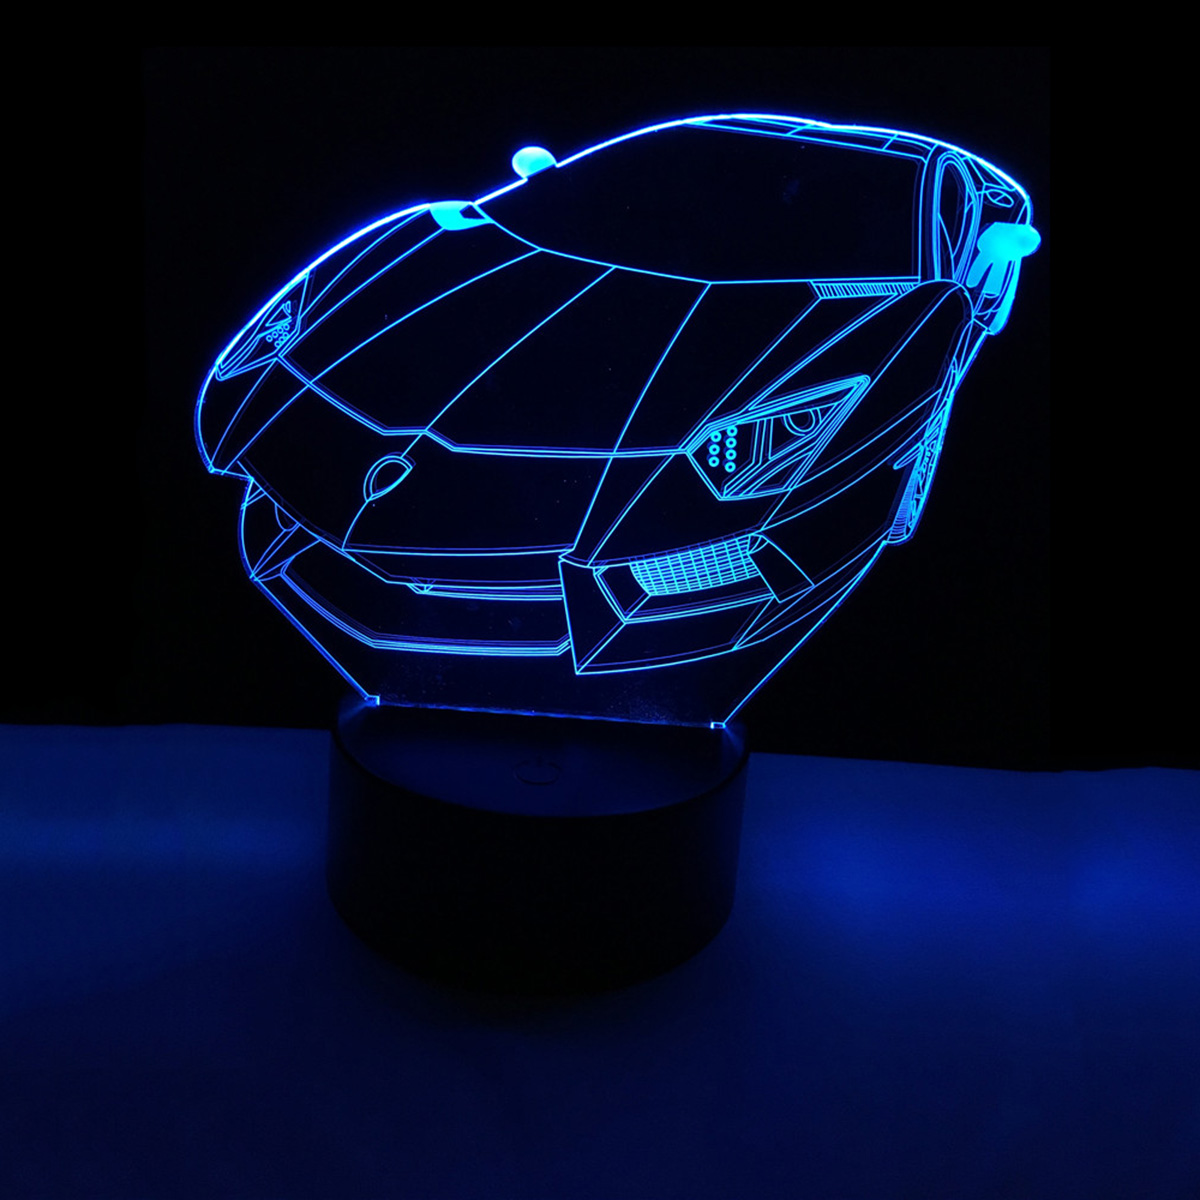 Colorful 3D Car USB LED Luminaria Acrylic Night Light Touch Switch Nightlight Home Decor Creative Atmosphere Bedroom Desk Lamp